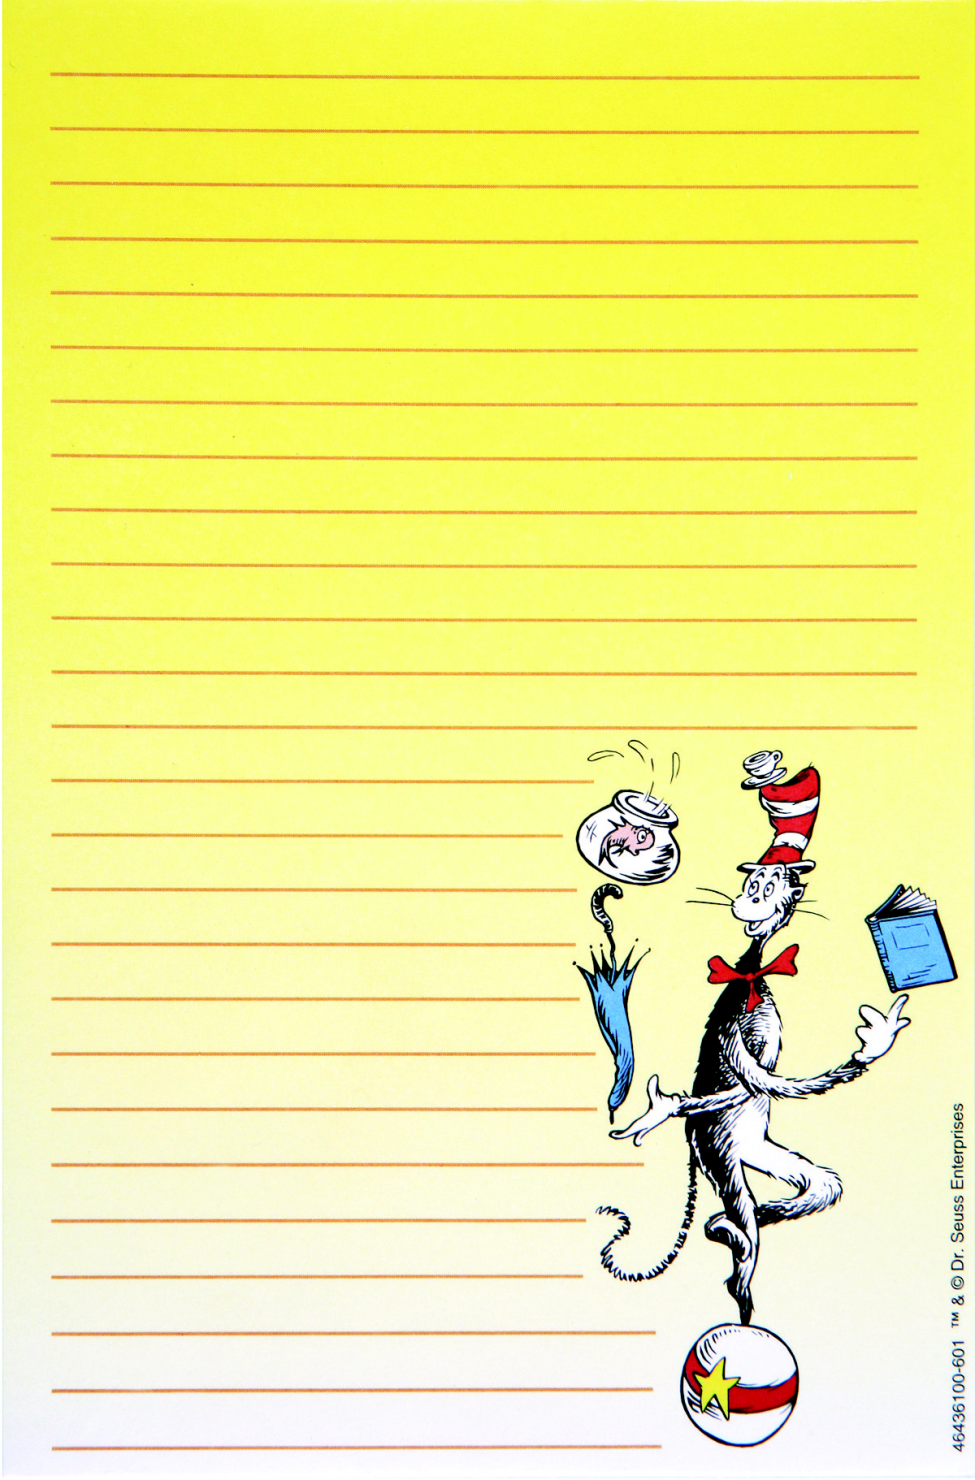 Dr Seuss Cat in the Hat Notepad, Early Childhood, 4 x 6 Inches